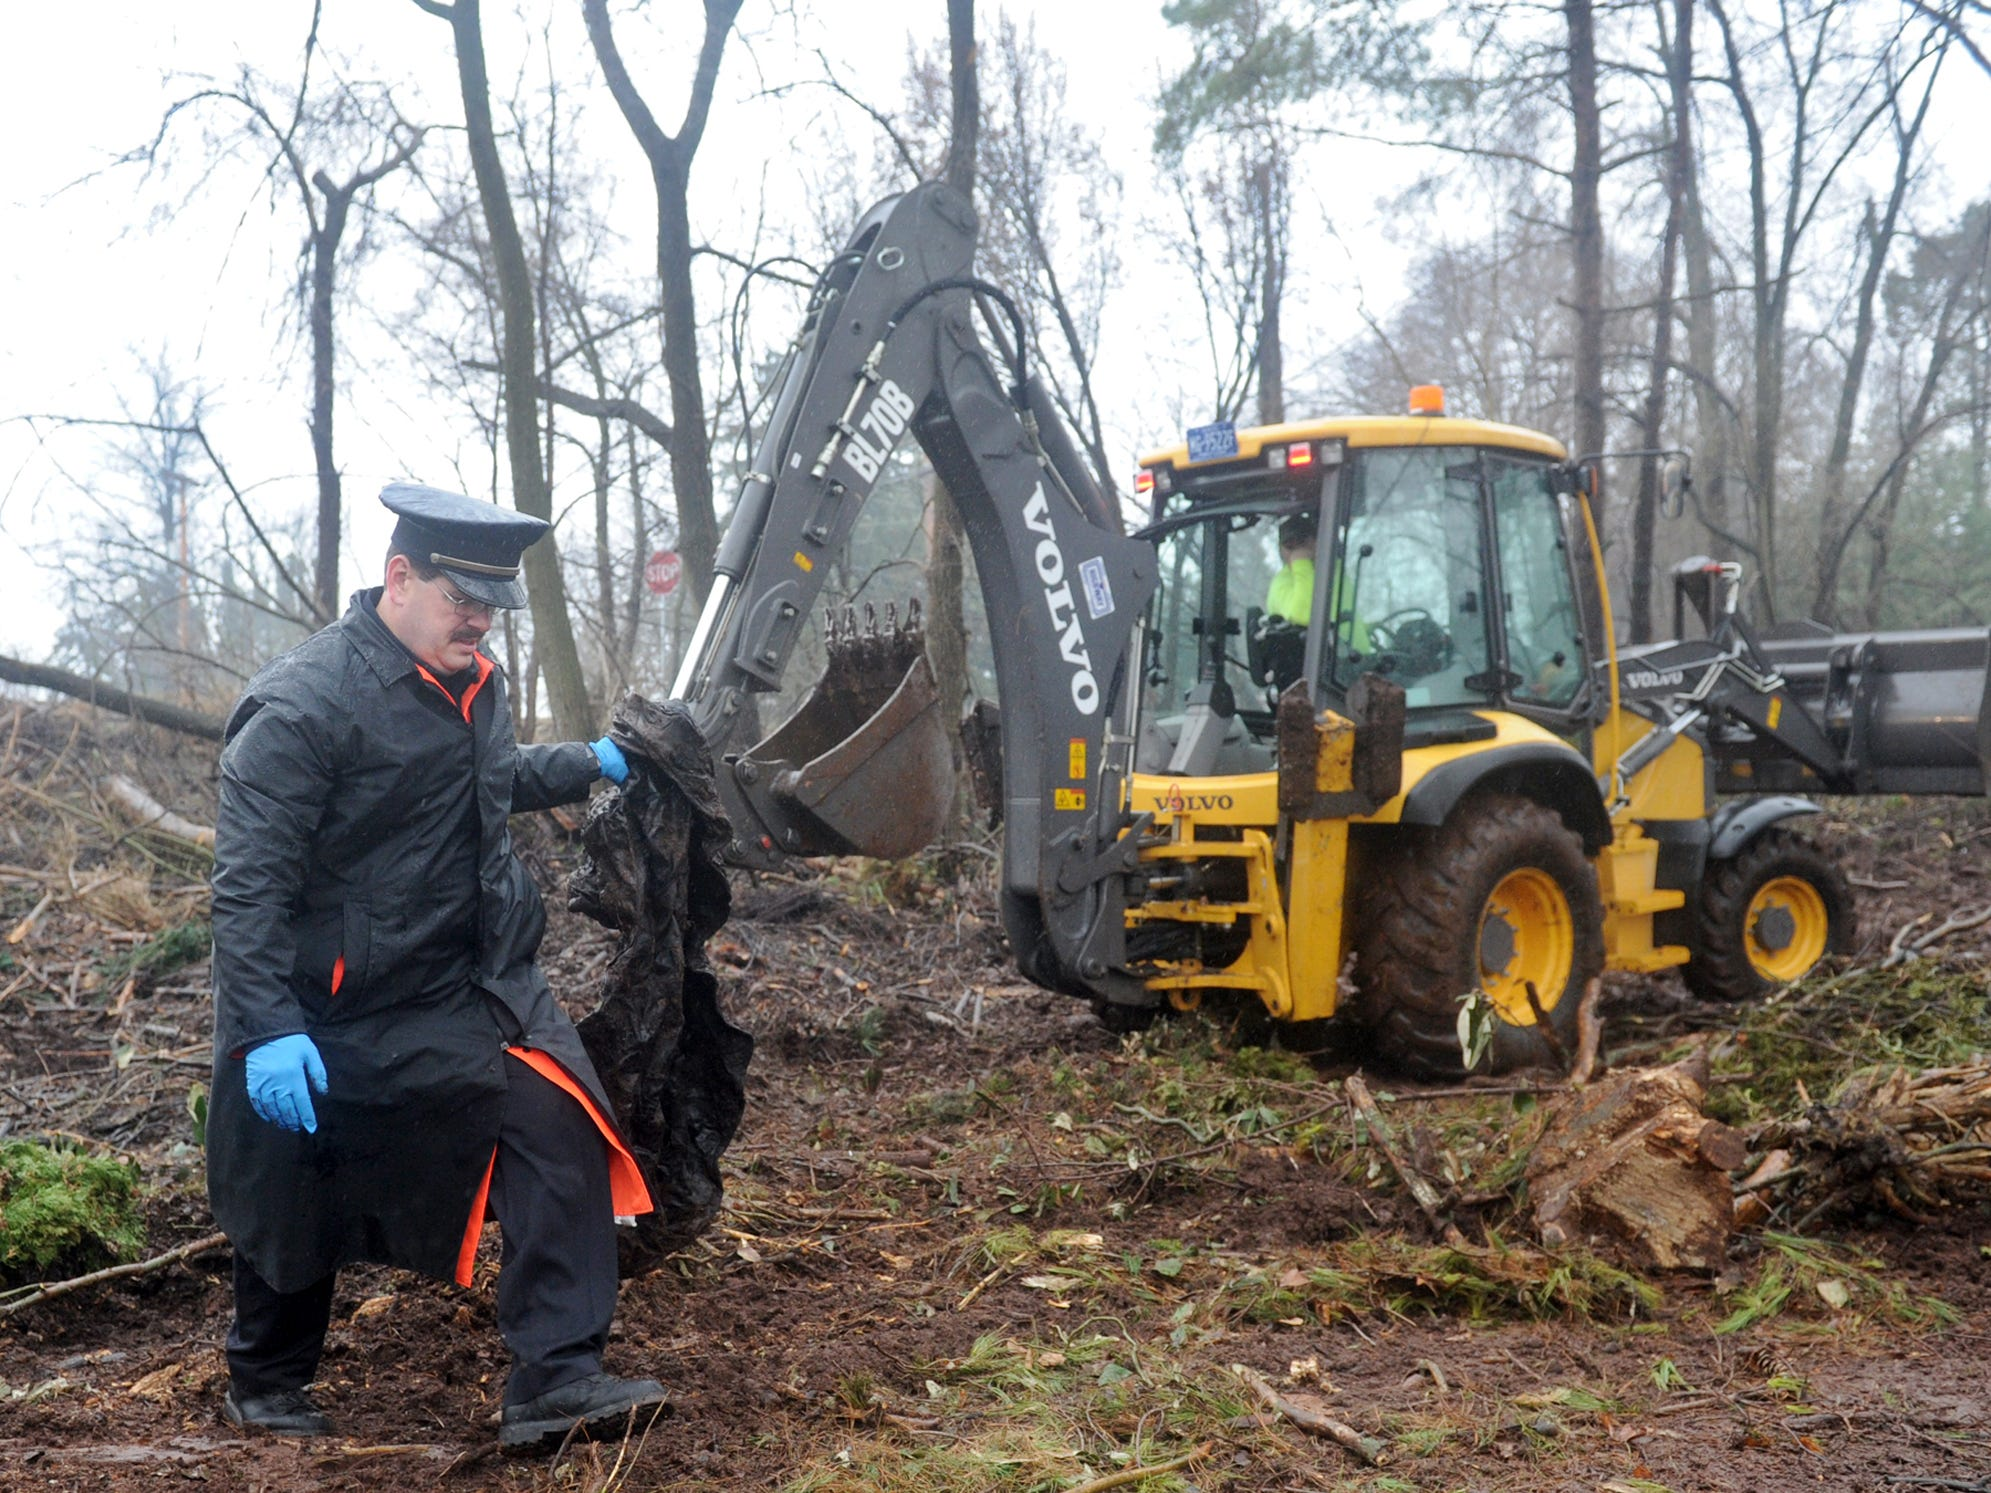 Officer Lance Krout with the West Manchester Township police department helps a member of the West Manchester Township maintenance crew investigate and clear out debris in a wooded area in West Manchester Township on Monday, April 7, 2014. The location was where a body was found last year and the police were there as part of an ongoing effort to identify the remains, West Manchester Township Chief Arthur Smith said. The investigation began Nov. 18, 2013 when tree trimmers working at Haviland and Loucks roads spotted a skull and called police.